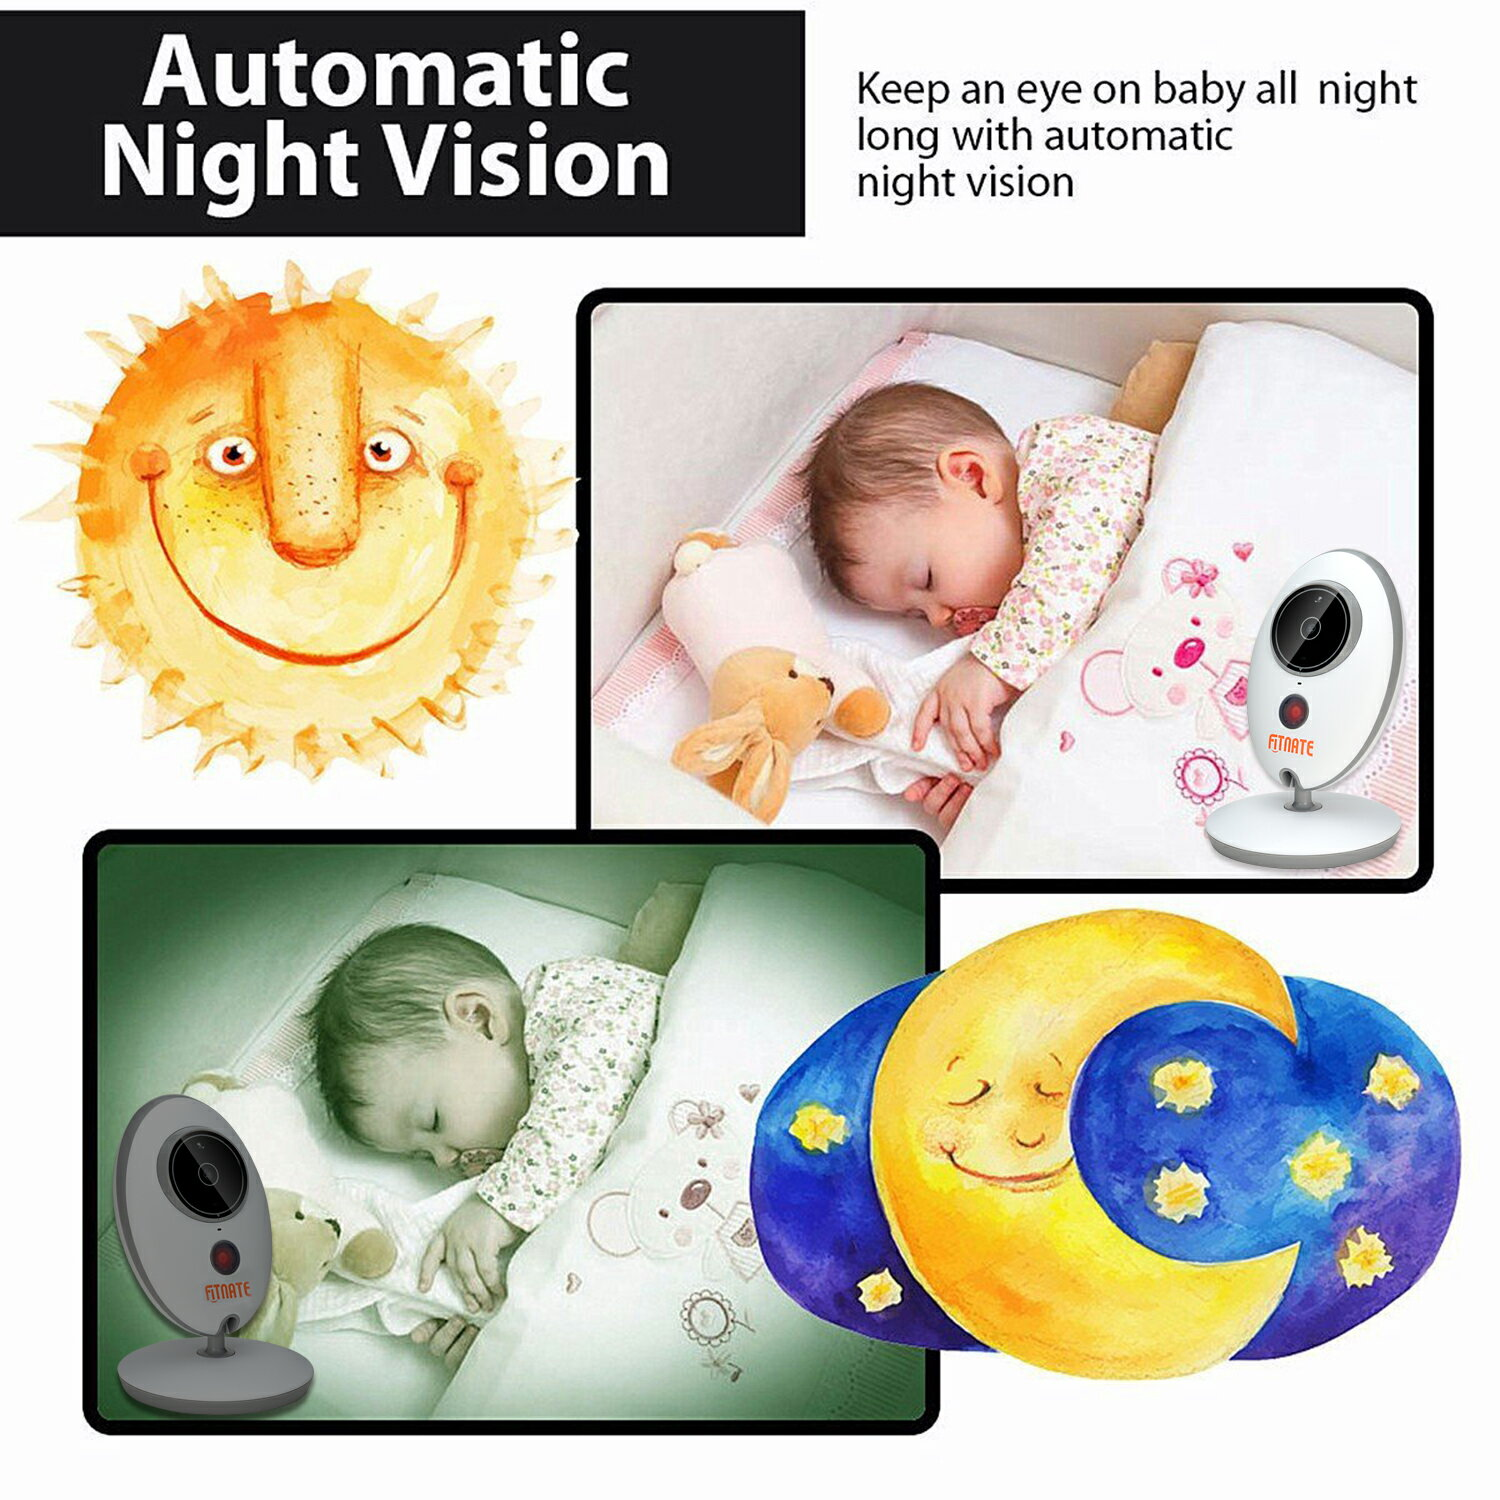 Fitnate®  Night Vision Wireless Video Baby Monitor with Digital Camera,Temperature Monitoring & 2 Way Talkback System, Built-in Remote Lullabies, More Strong Signal, Larger Monitor 9